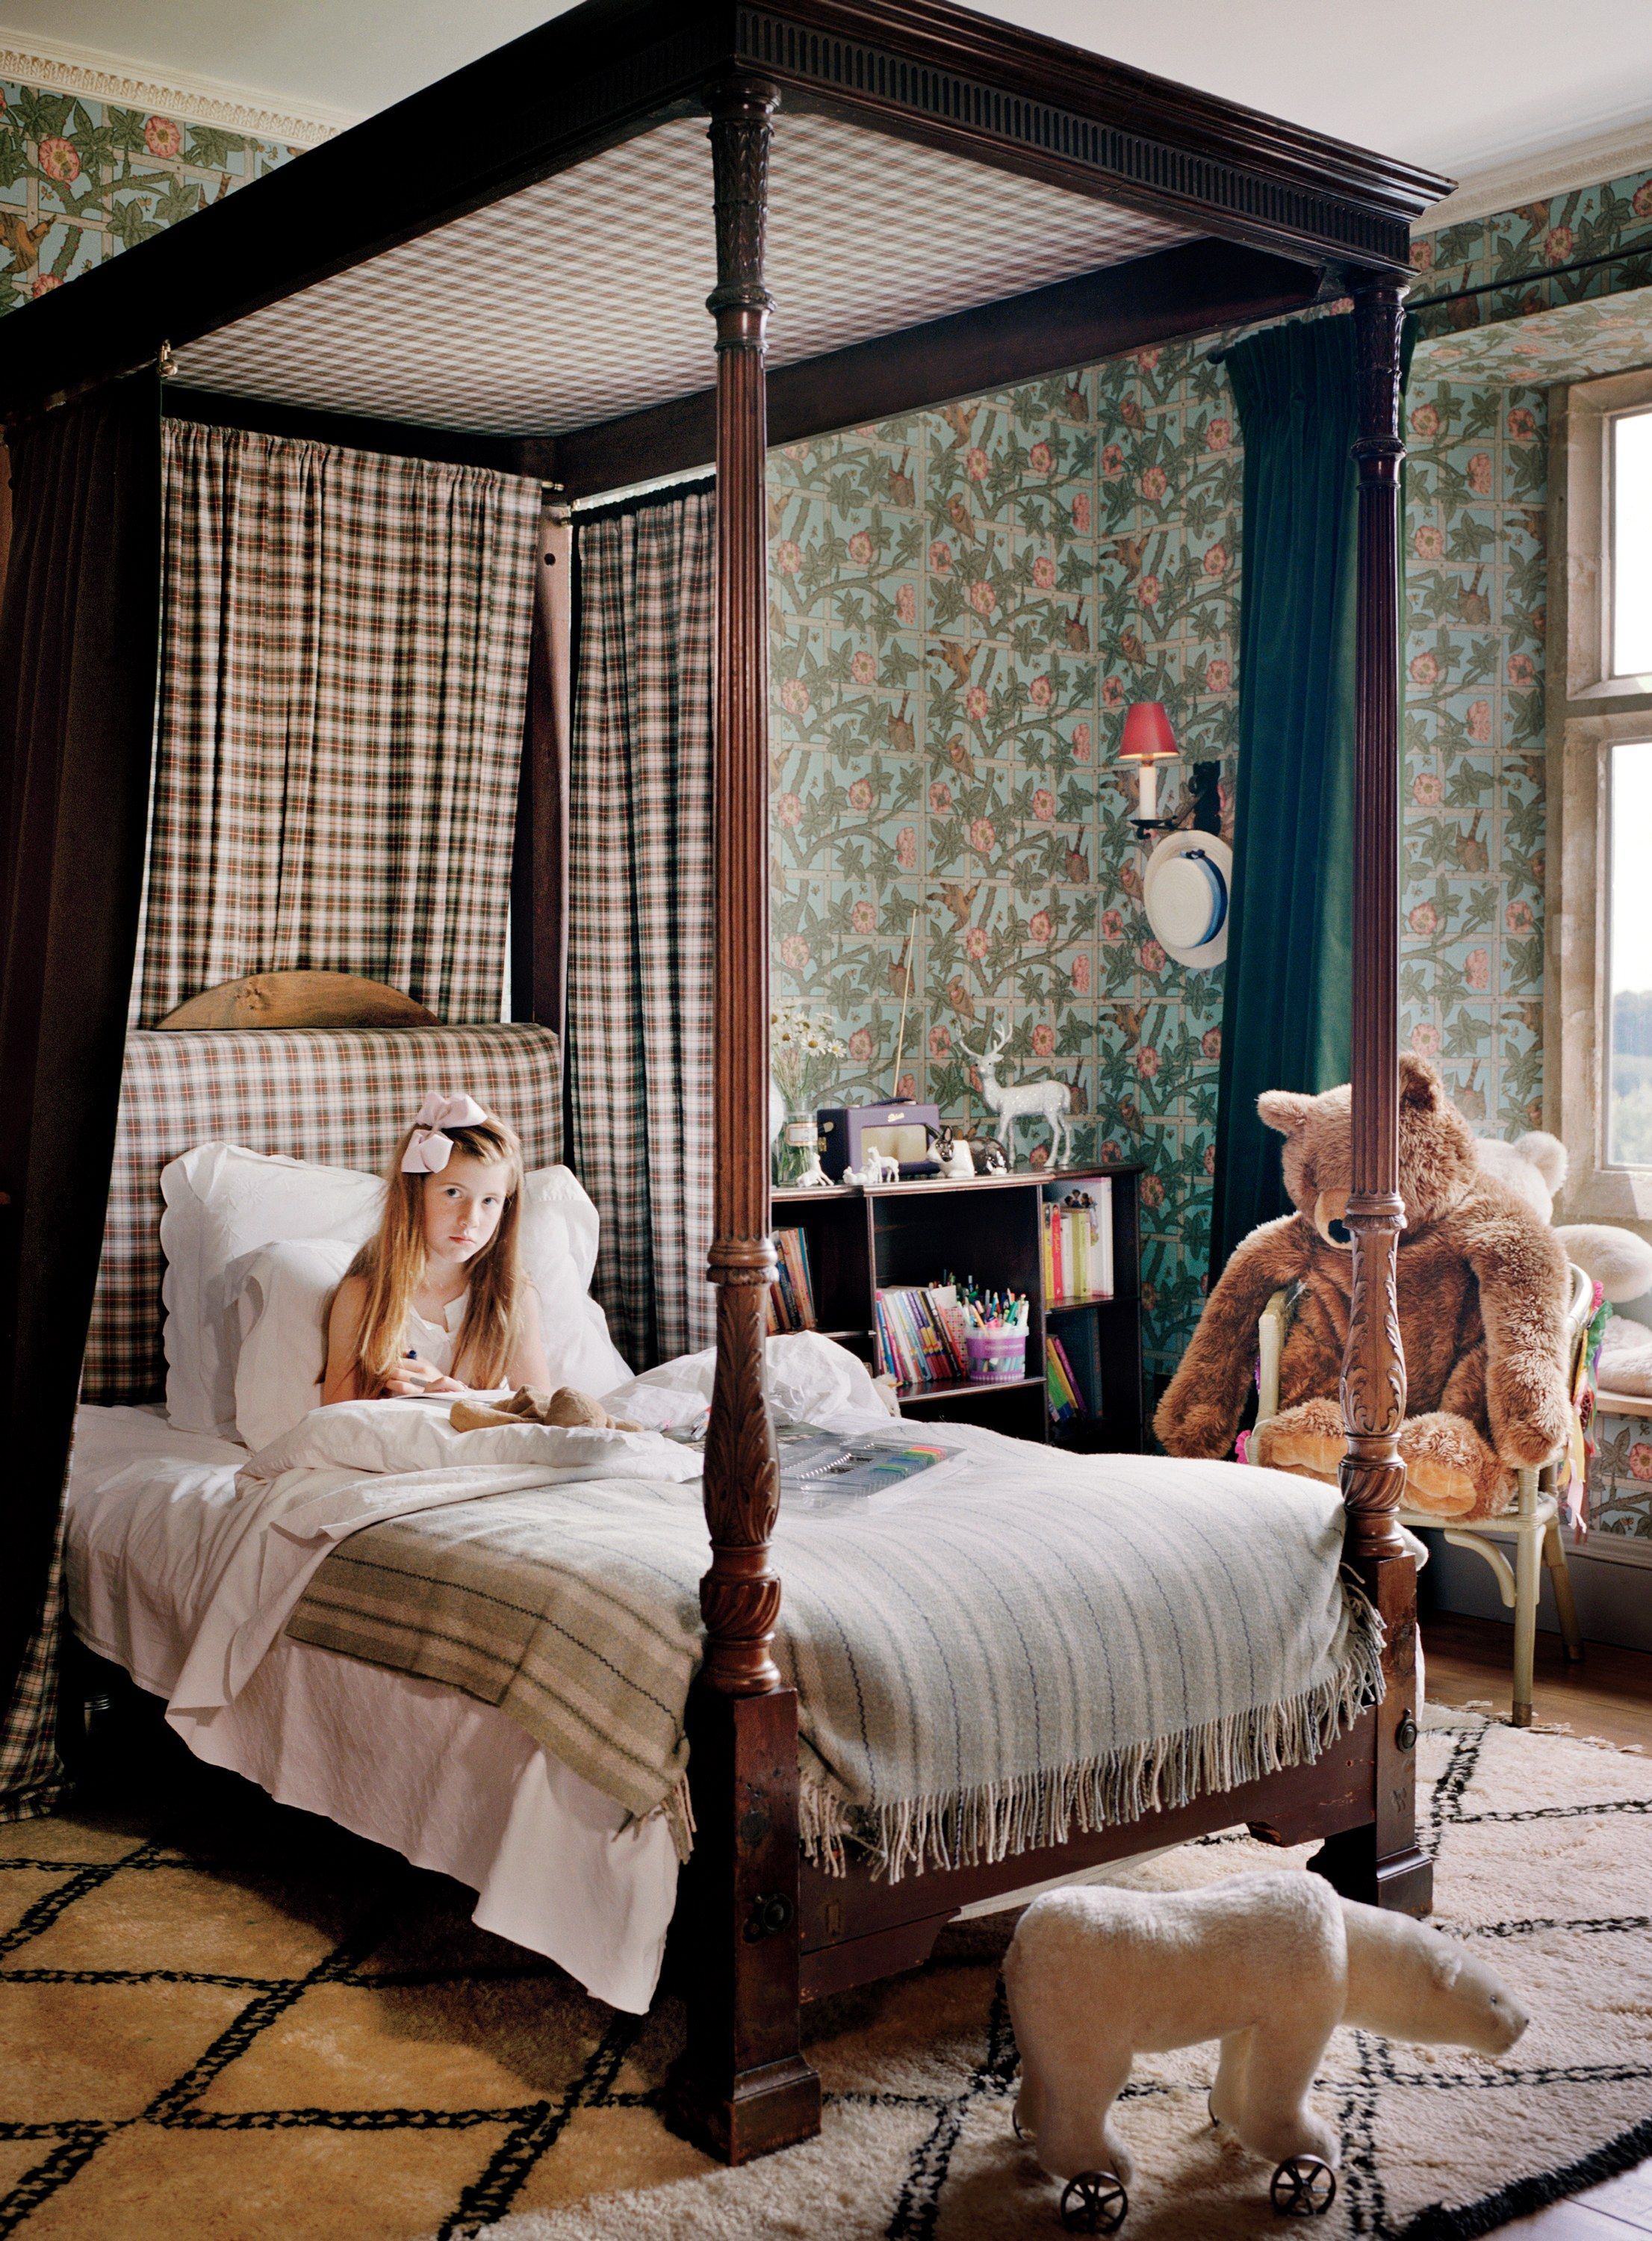 A Look Inside Plum Sykess Dream House In The English Countryside